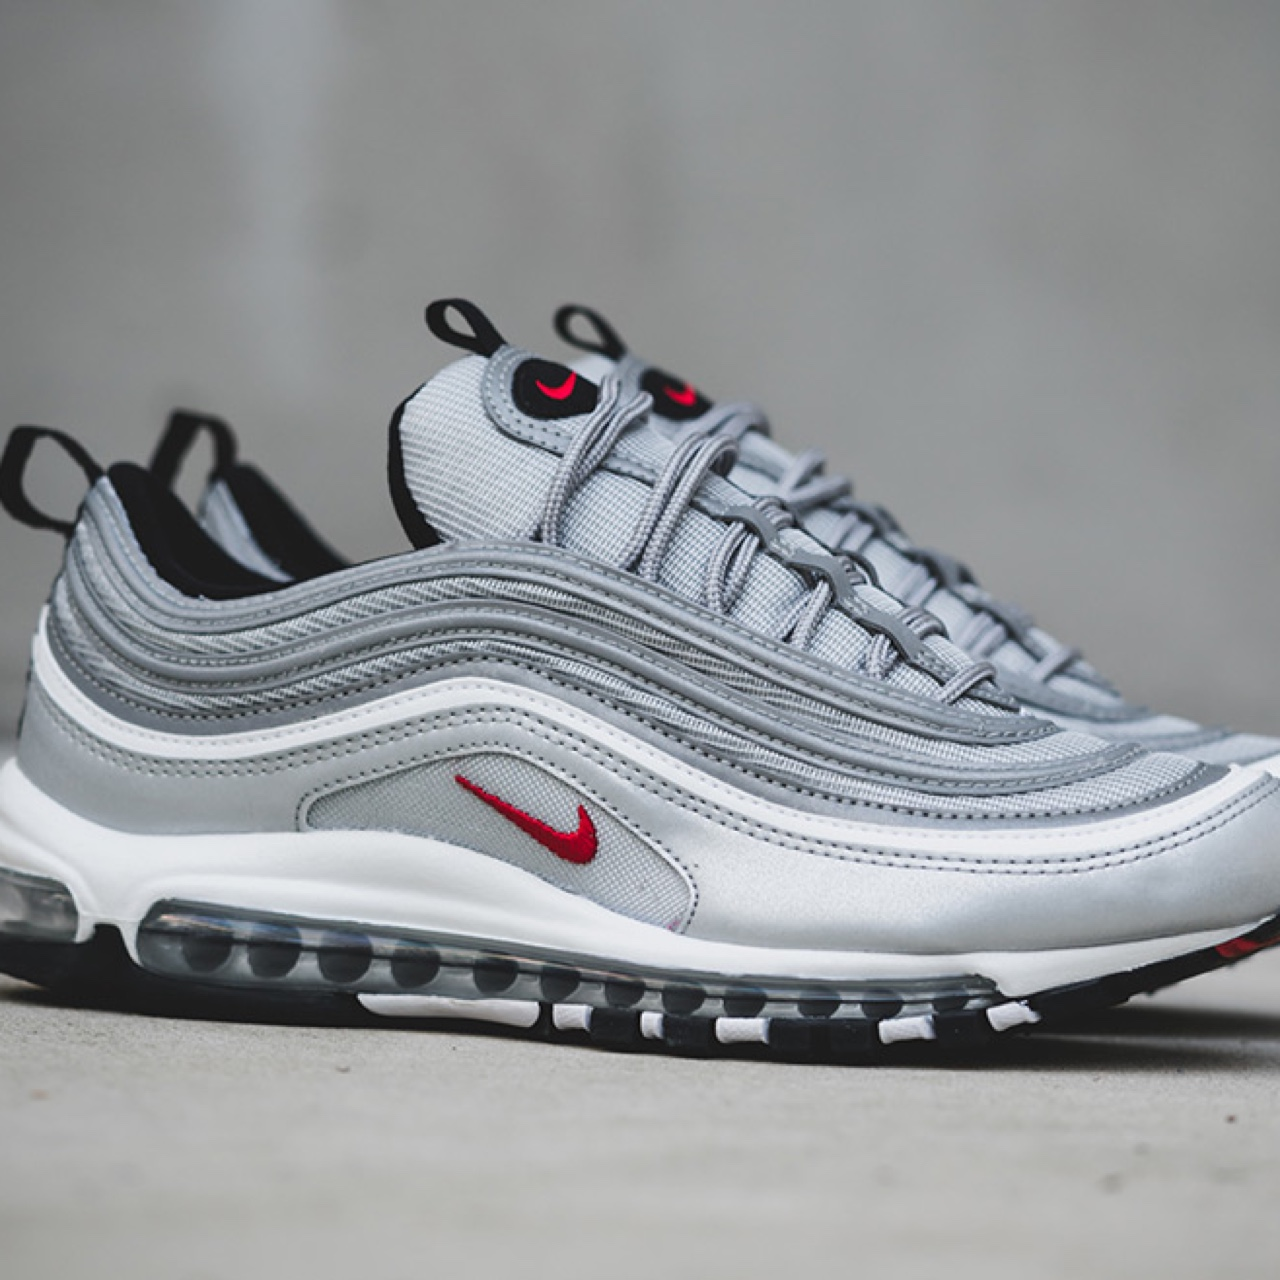 Nike air max 97 silver bullet, copped from the drop Depop